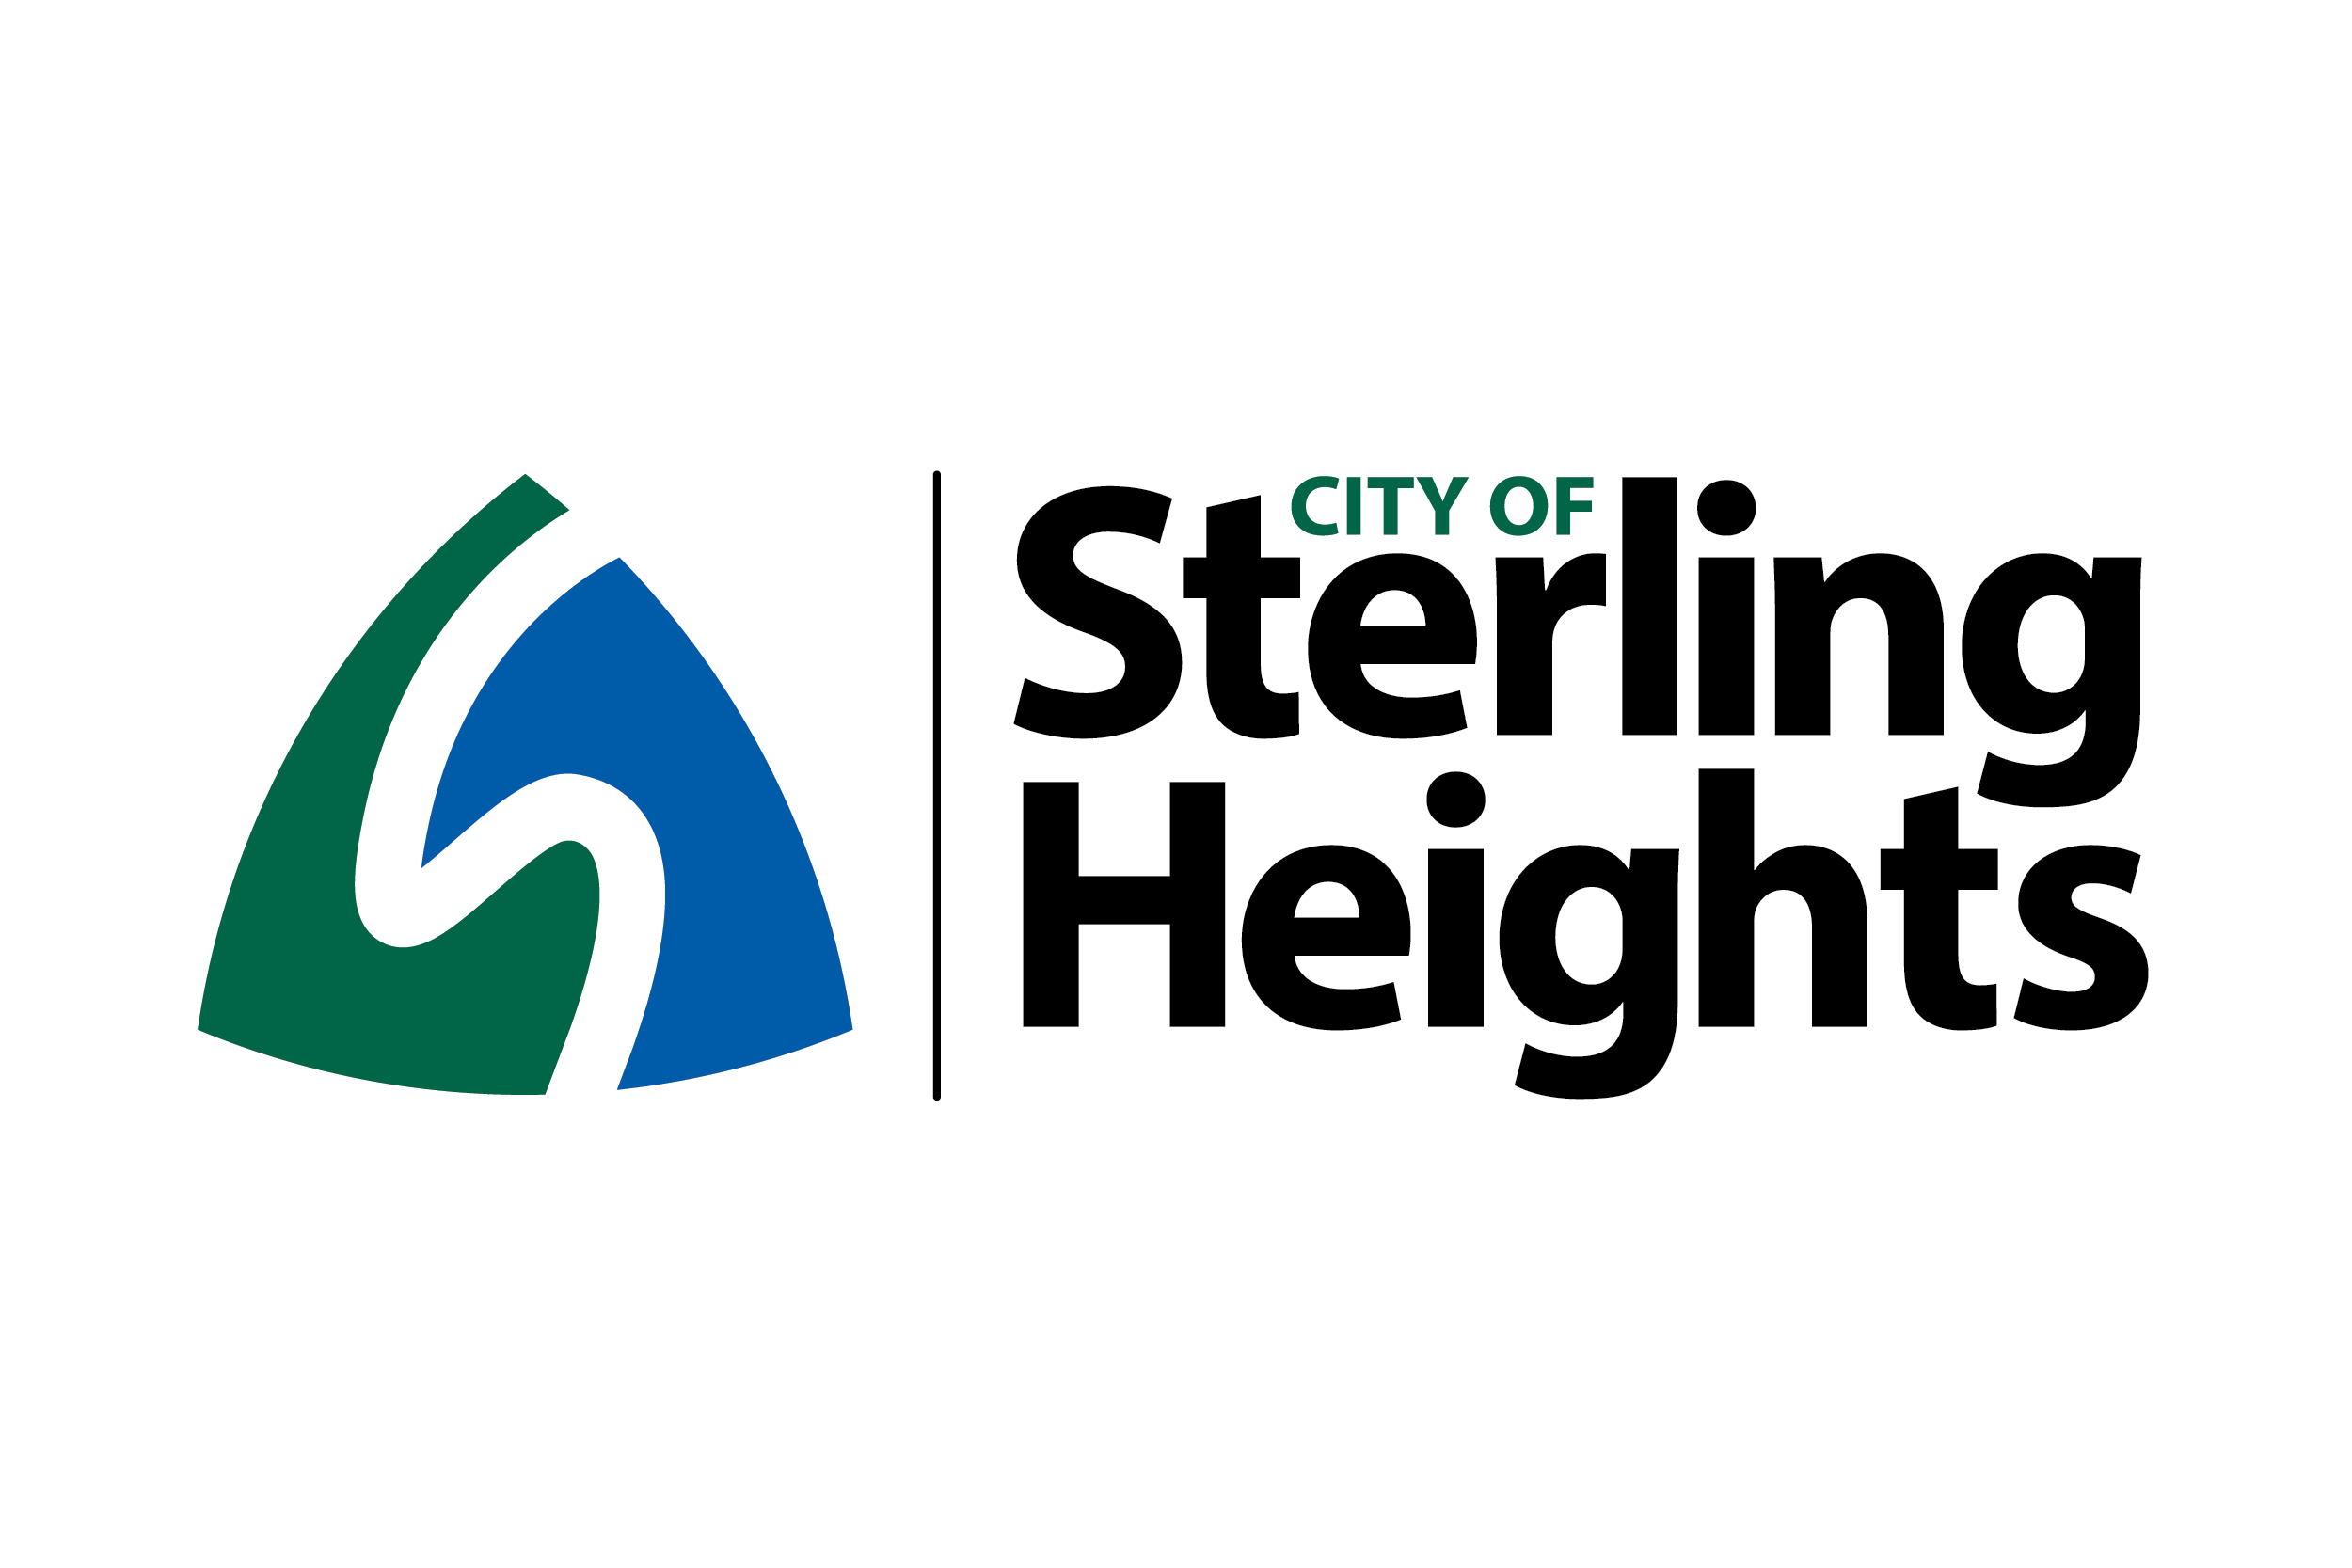 ME_Web_Logo_City of Sterling Heights_4C.png